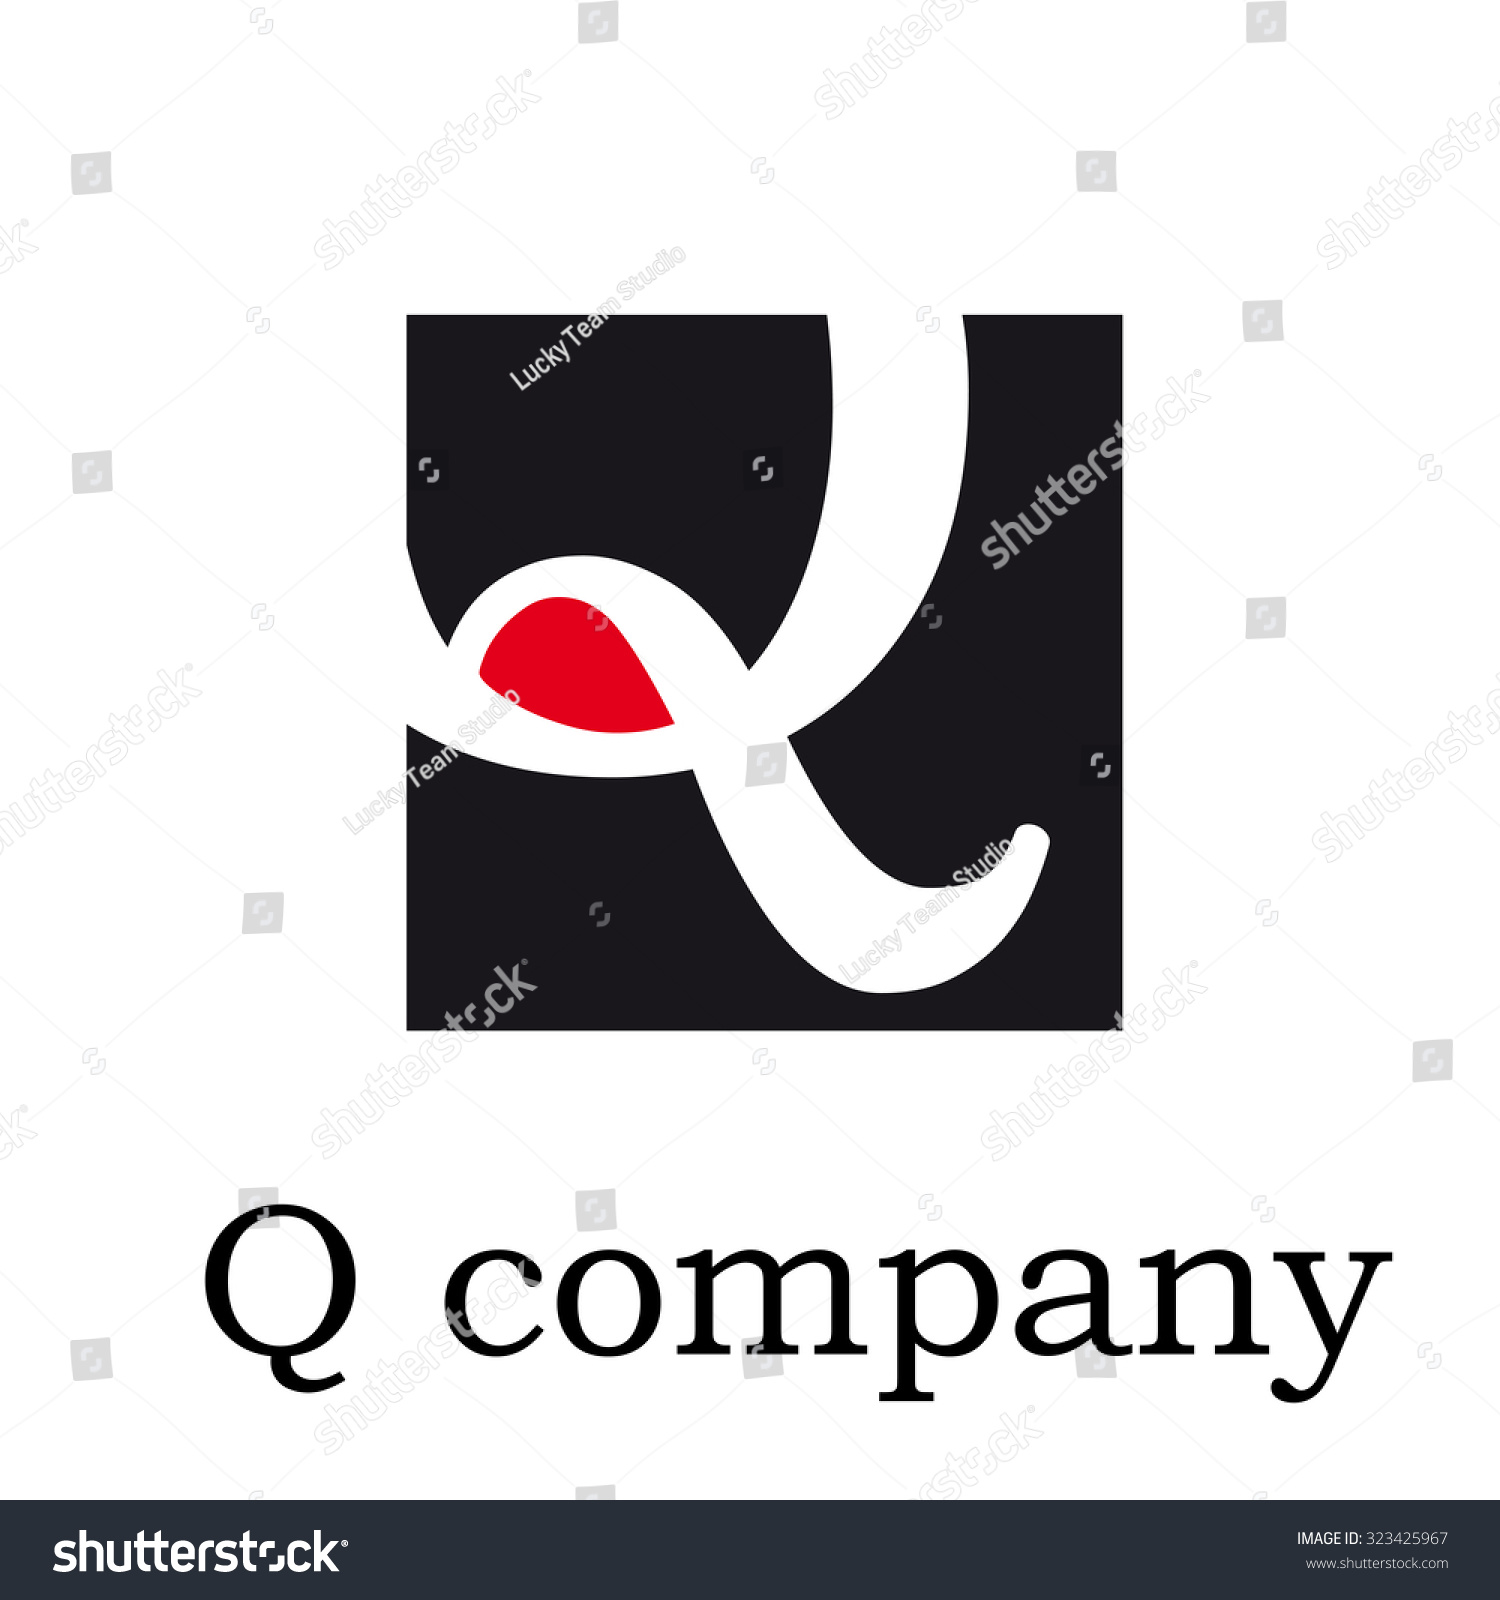 Vector icon Vector initial letter Q on red and black